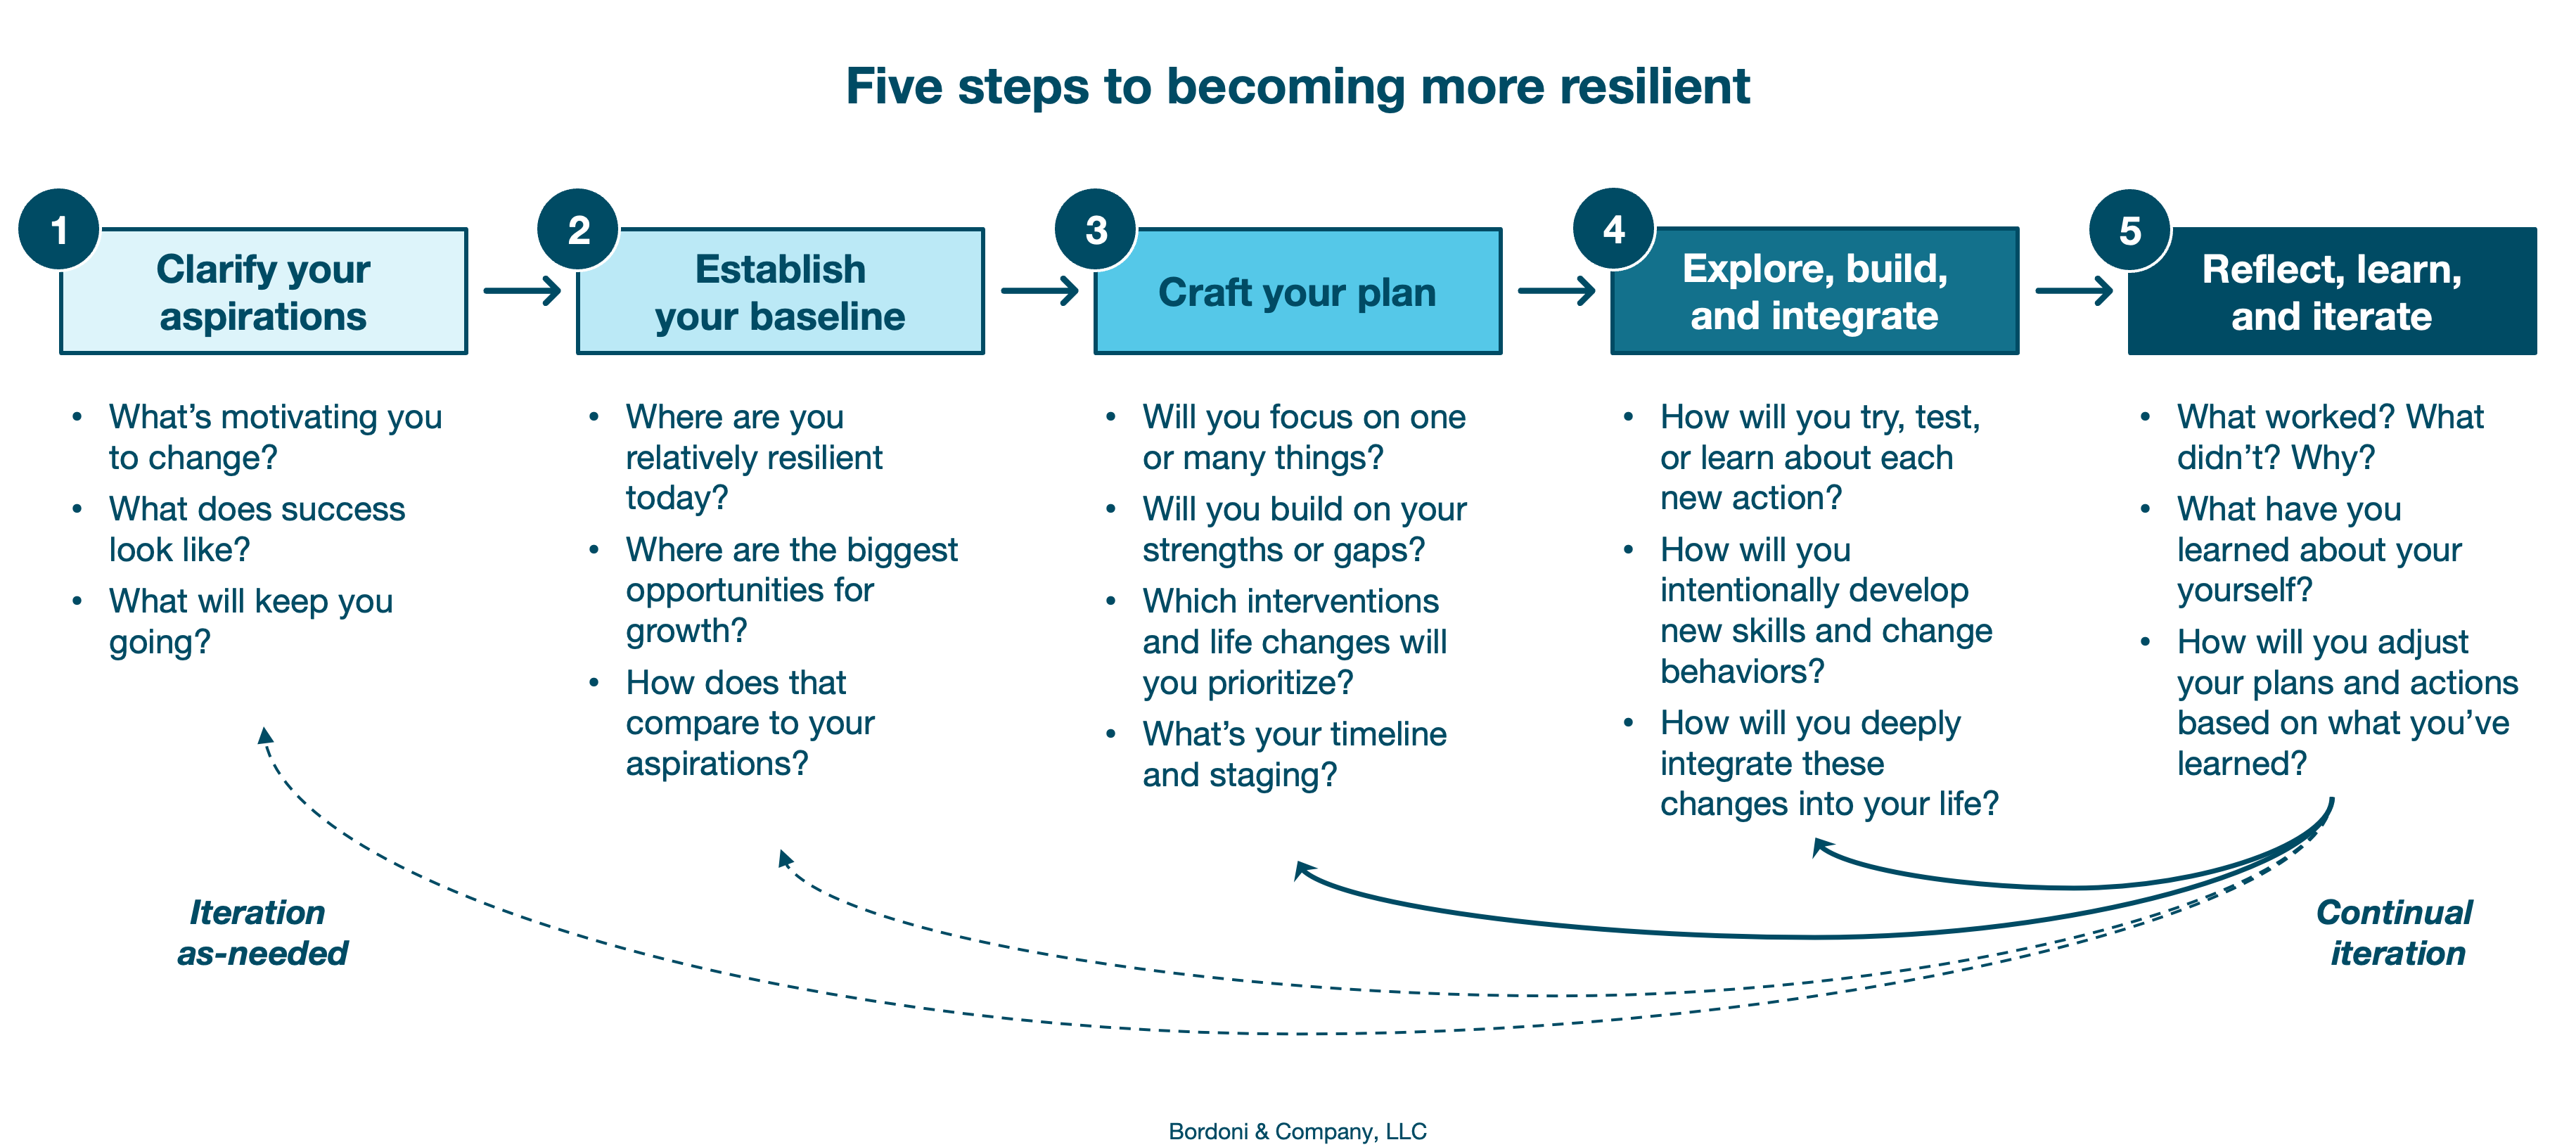 Five steps to becoming more resilient | Bordoni & Company